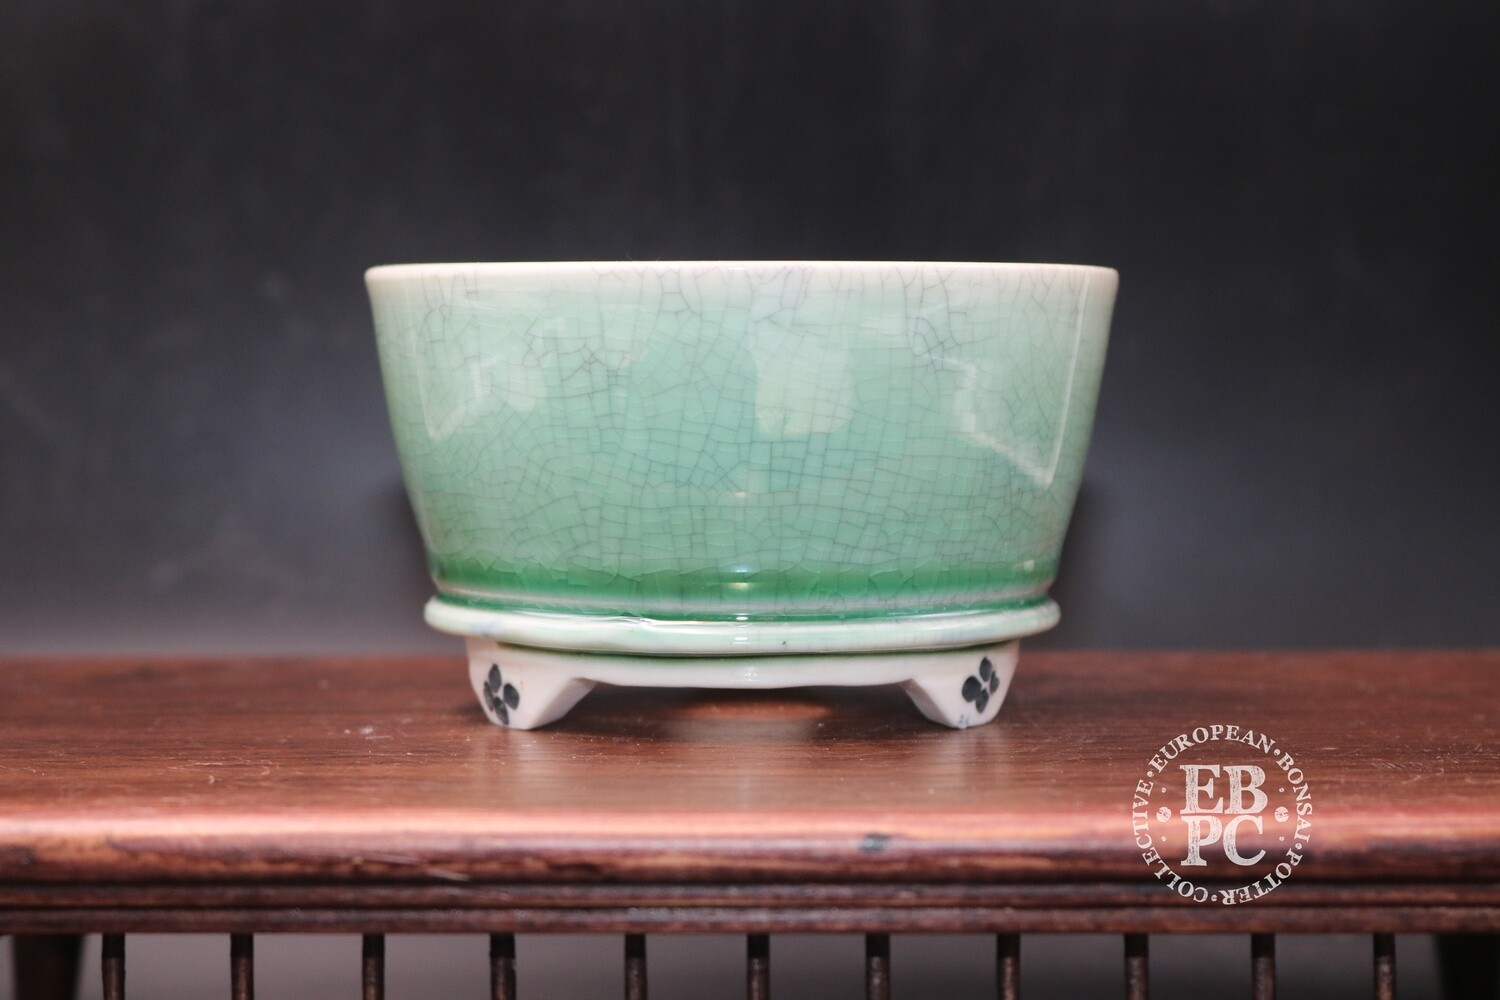 SOLD - EBL Pots - 10.6cm; Porcelain; Round; Shohin pot; Celadon Crackle glaze; Light Green; Elsebeth Ludwigsen